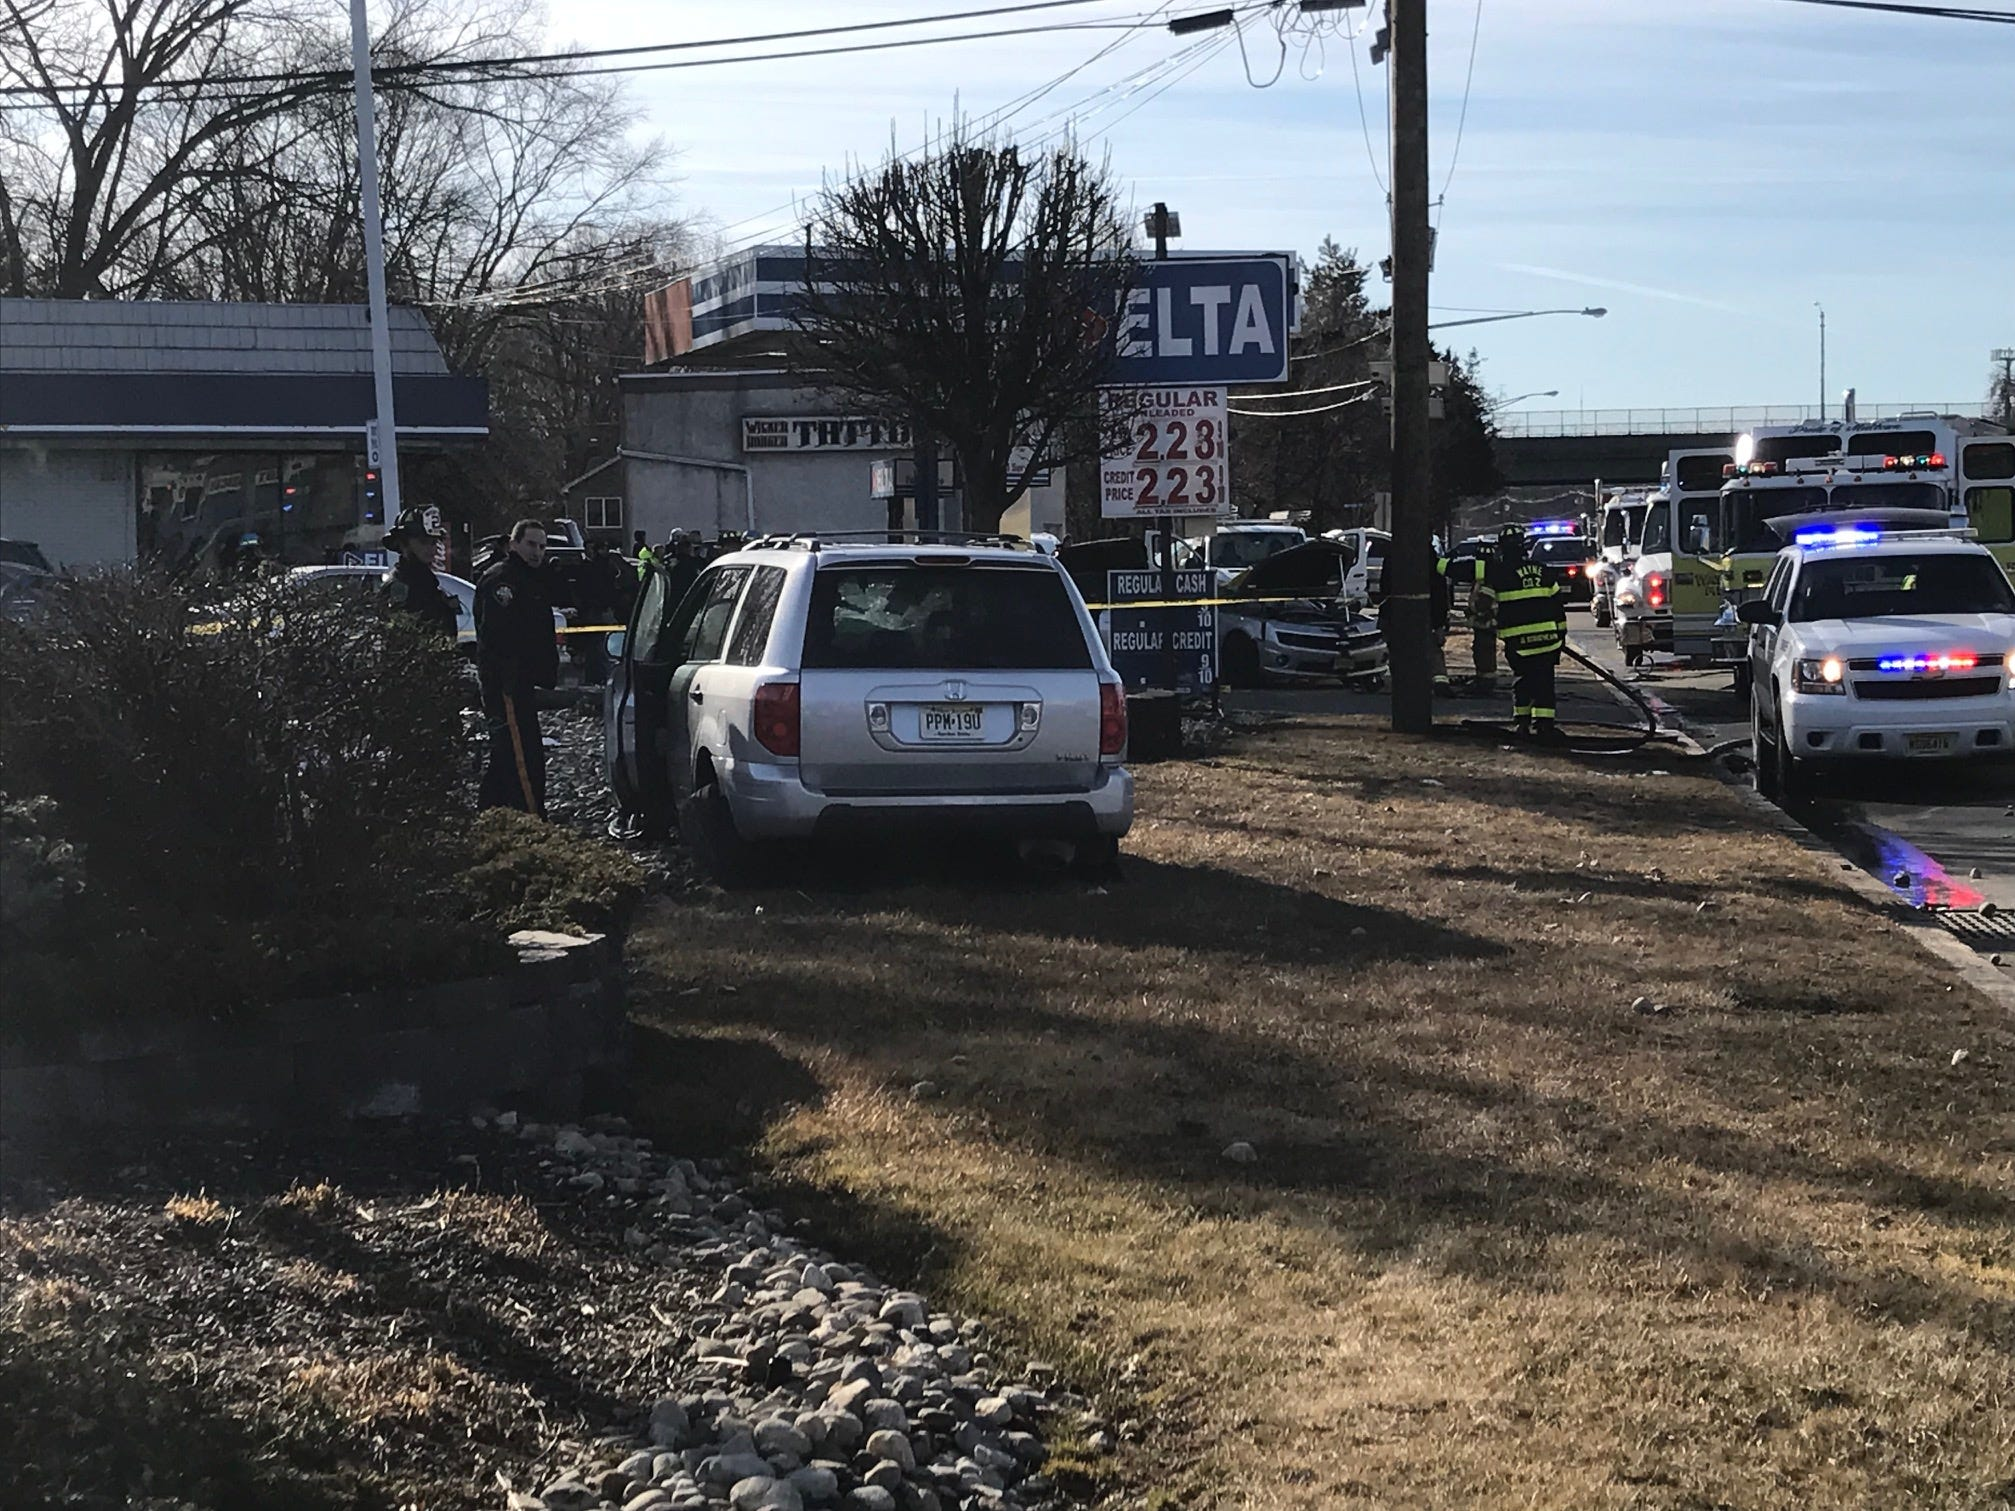 Wayne first responders on scene of what witnesses say was a three car crash Tuesday morning where a car struck cars at Delta gas station.